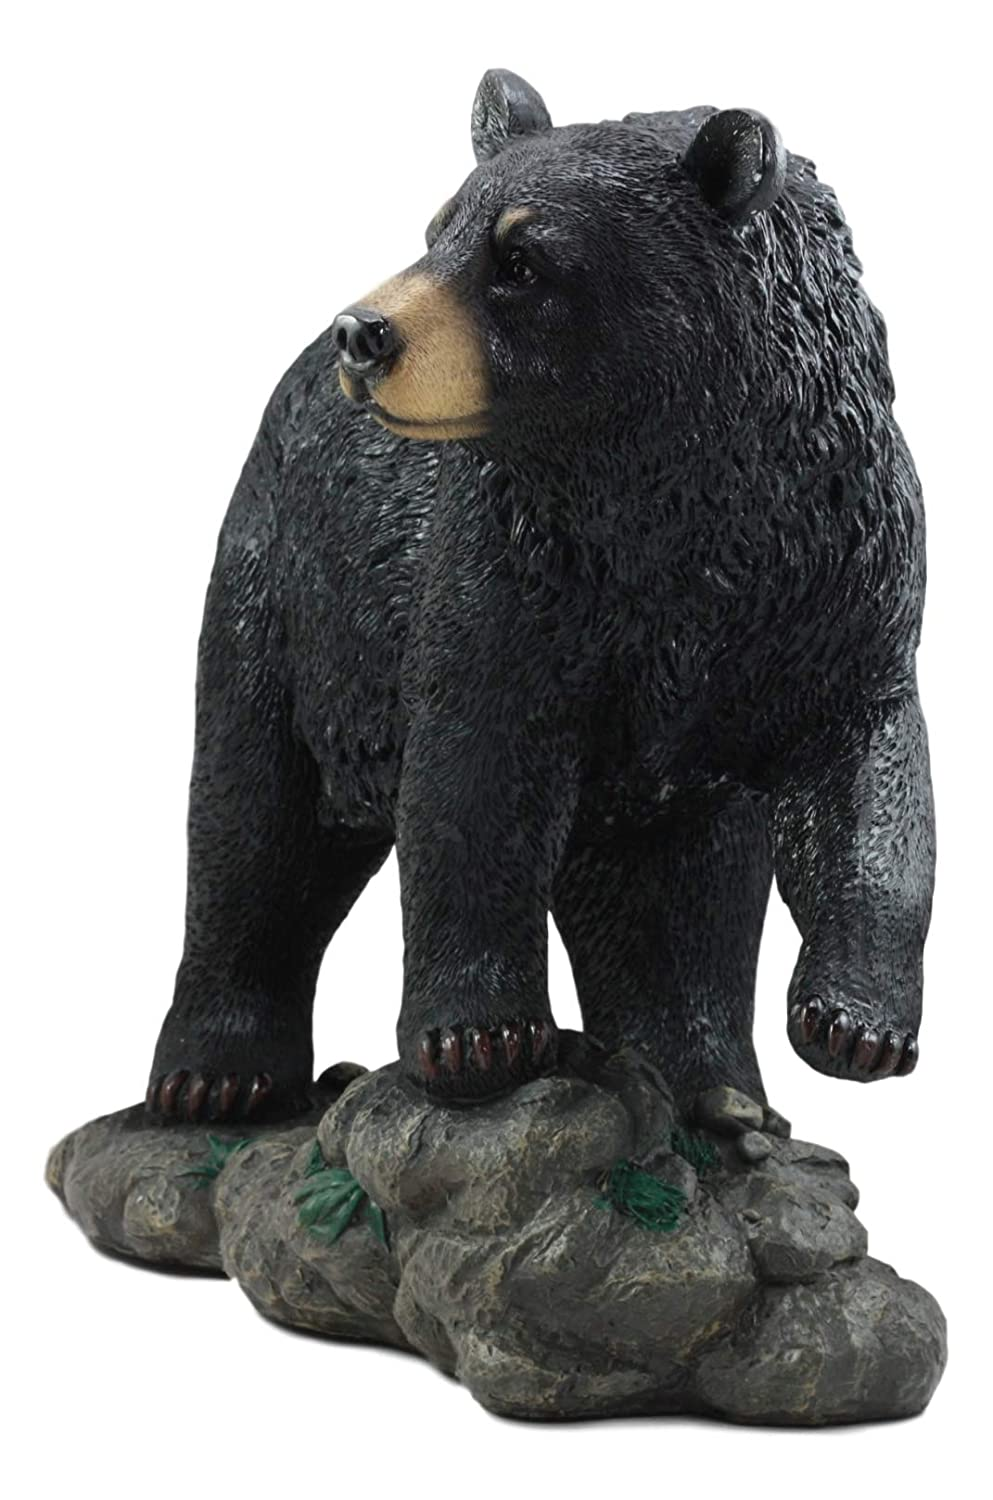 Ebros Large Realistic Strolling Black Bear Statue 16.5 Long Rustic Cabin Decor Figurine